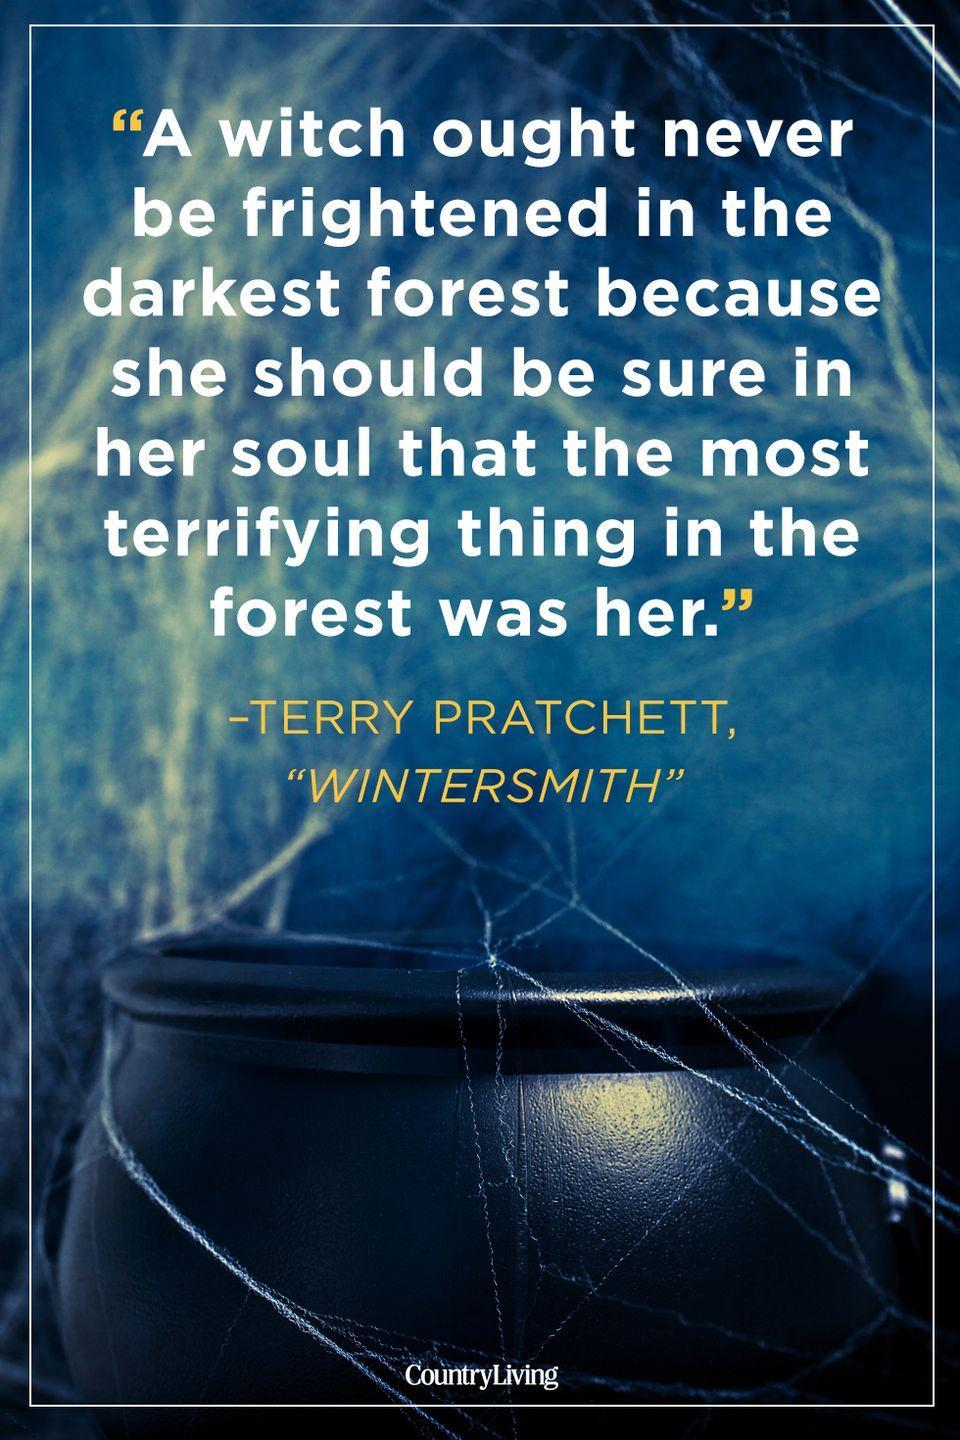 """<p>""""A witch ought never be frightened in the darkest forest because she should be sure in her soul that the most terrifying thing in the forest was her.""""</p>"""